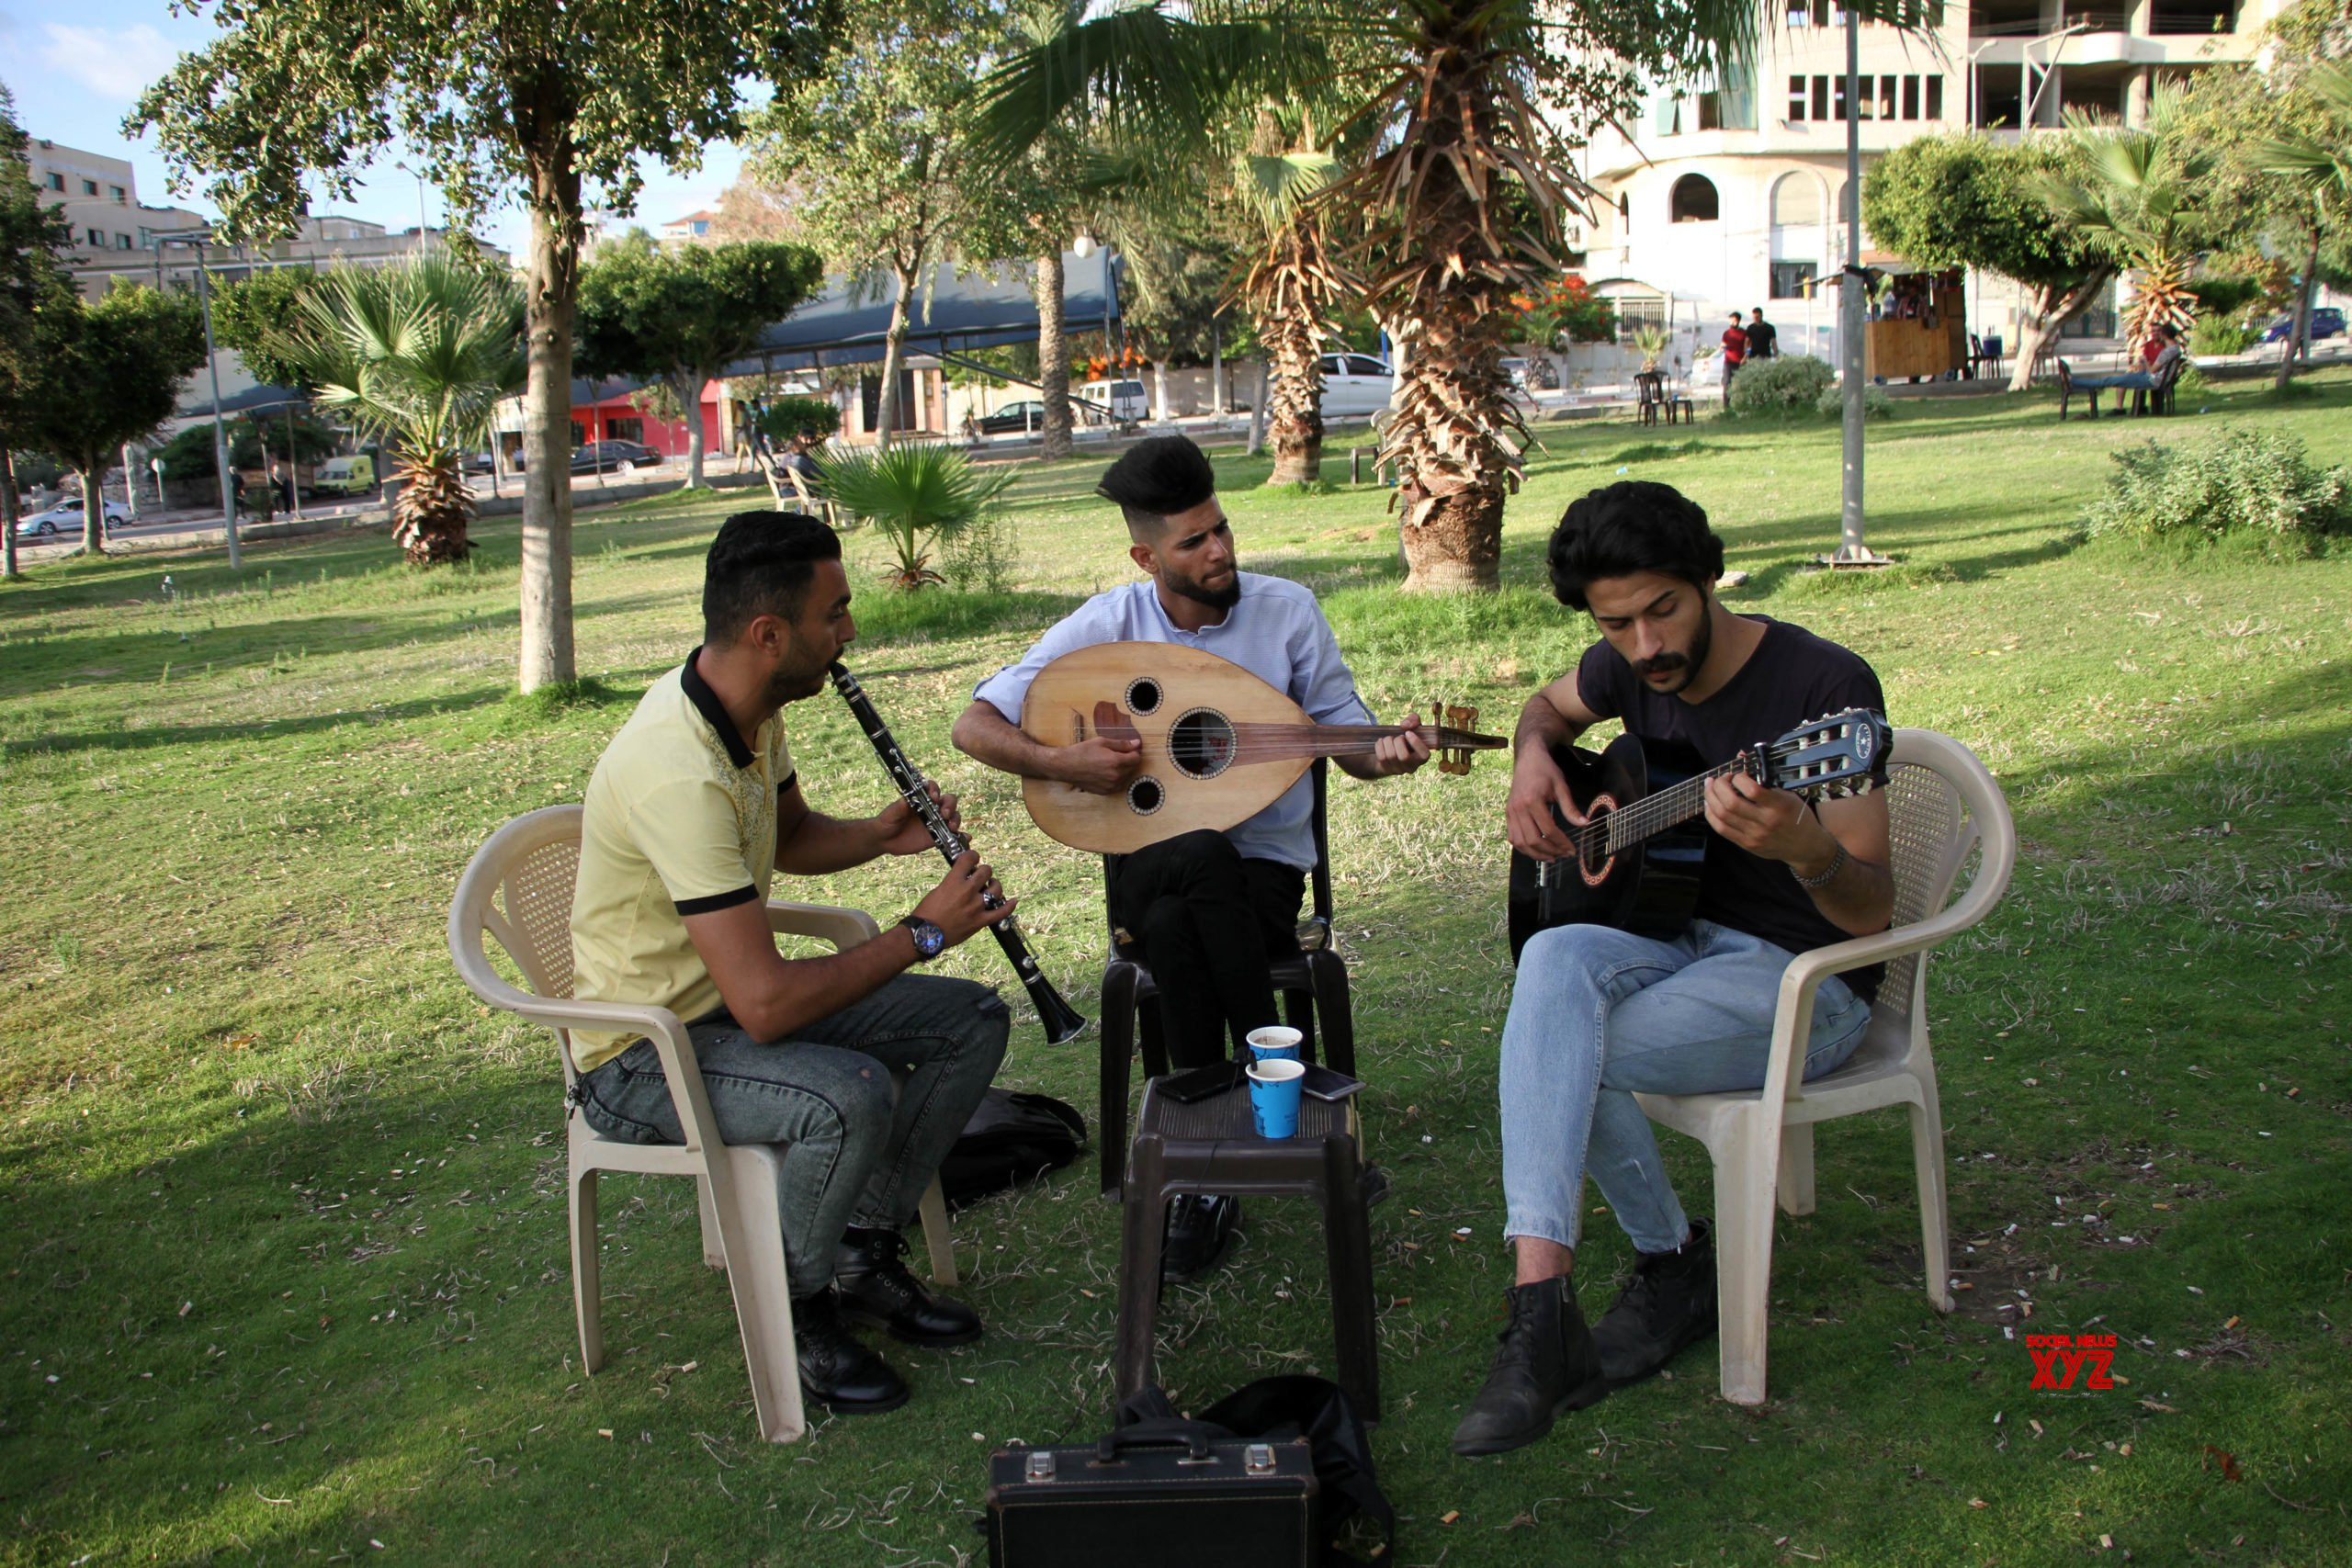 MIDEAST - GAZA CITY - YOUNG MUSICIANS - STREET PERFORMANCE #Gallery